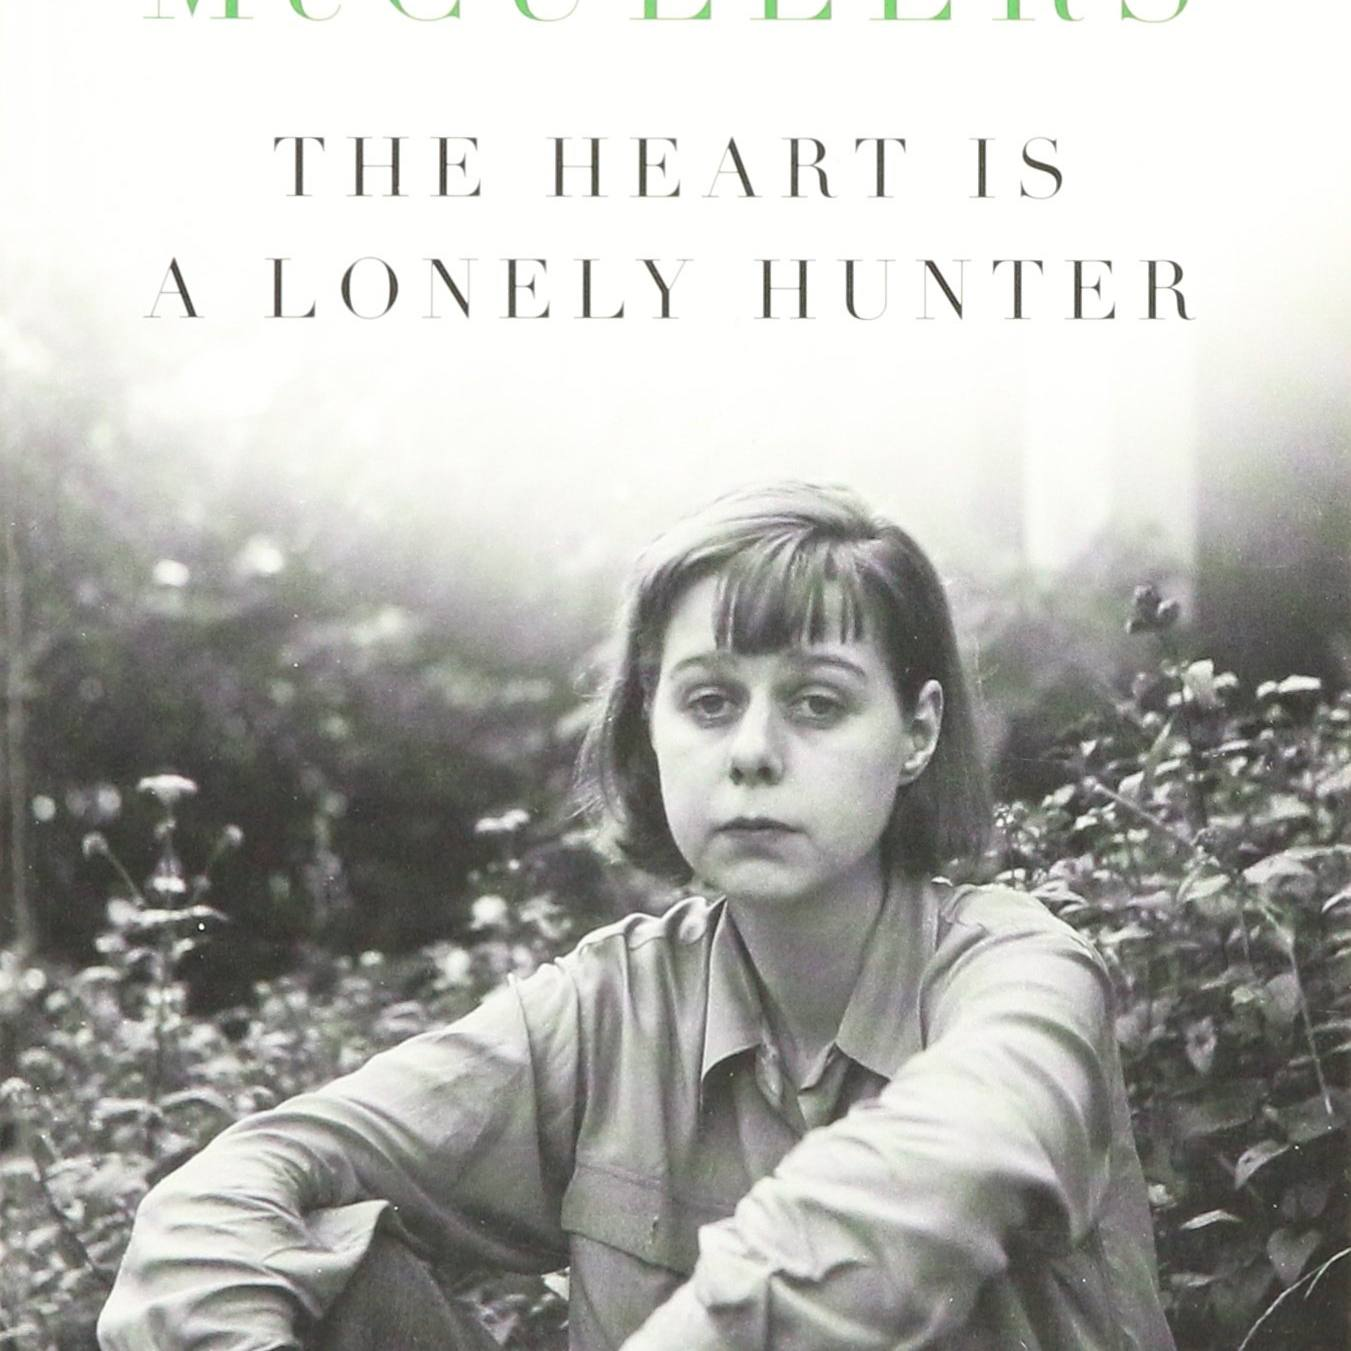 the heart is a lonely hunter book cover